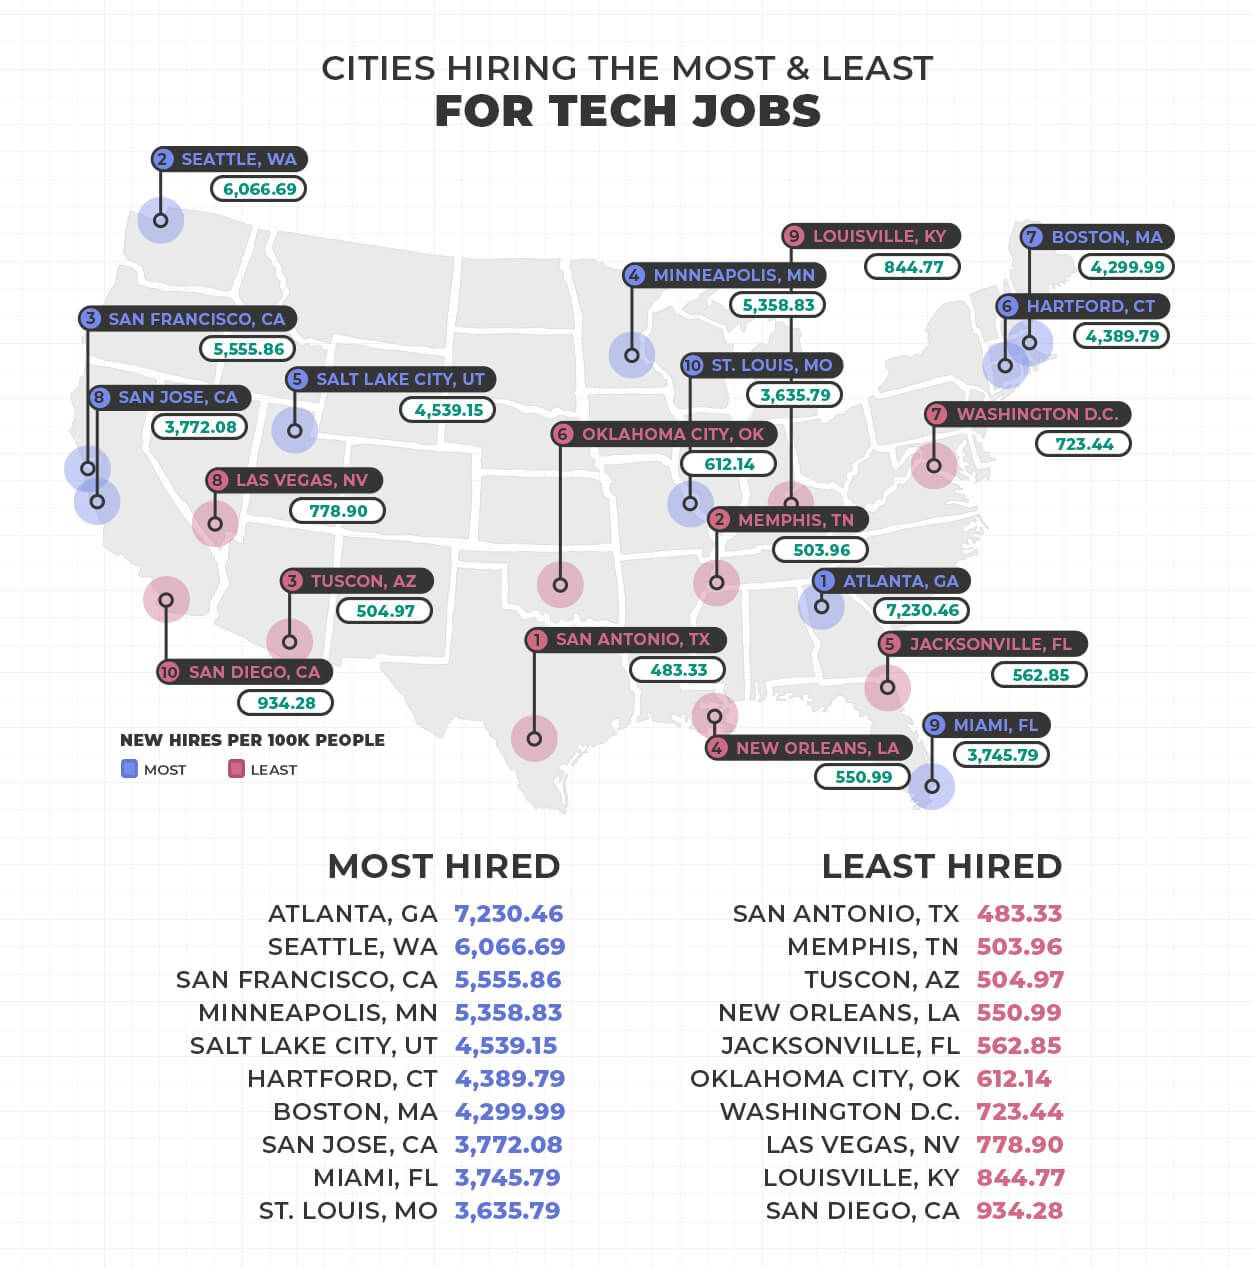 Find Out The Best Cities Hiring And Paying The Most For Tech Jobs